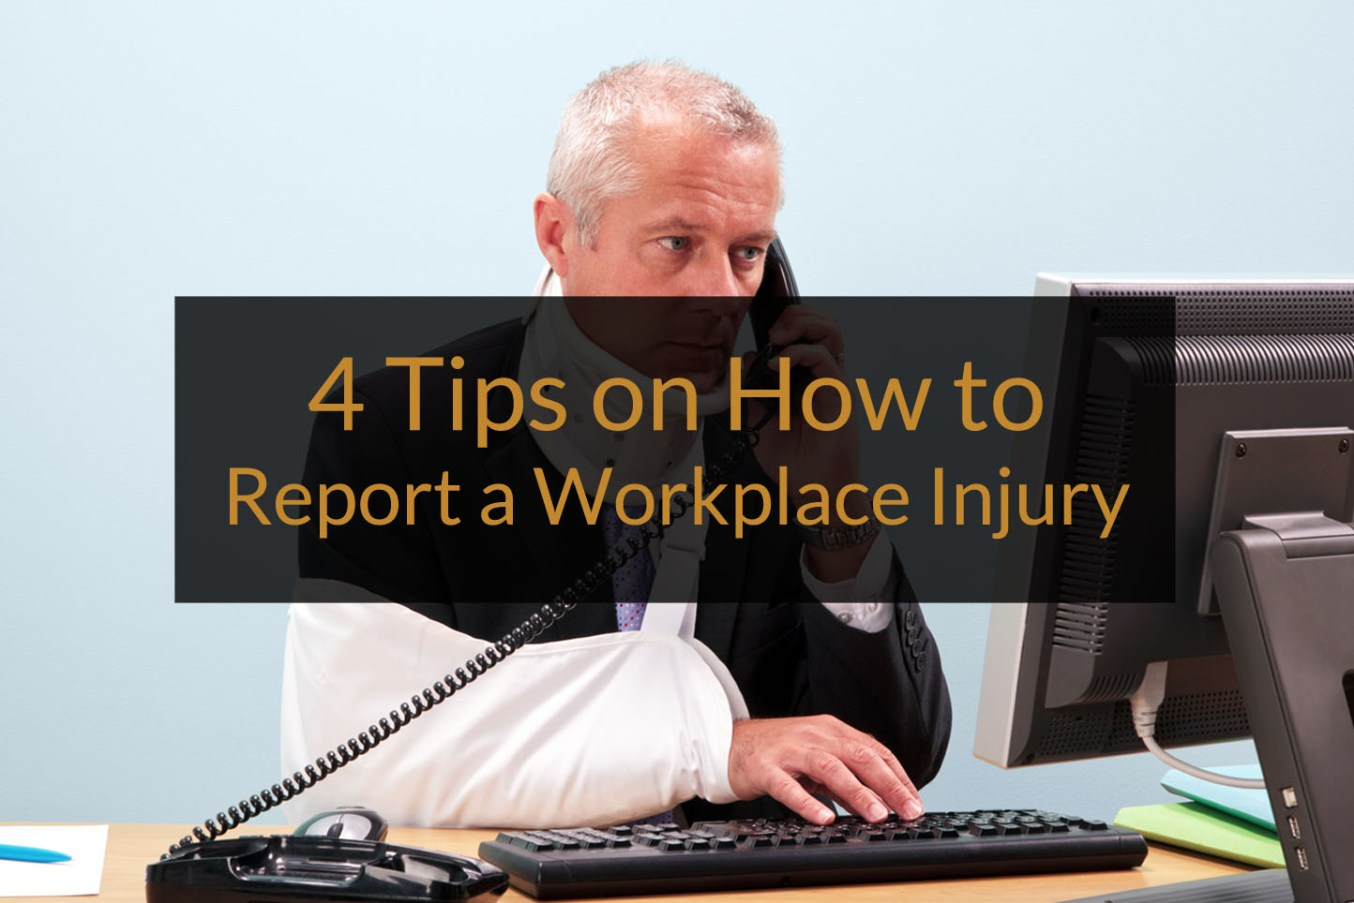 How To Report A Workplace Injury 4 Easy To Follow Tips